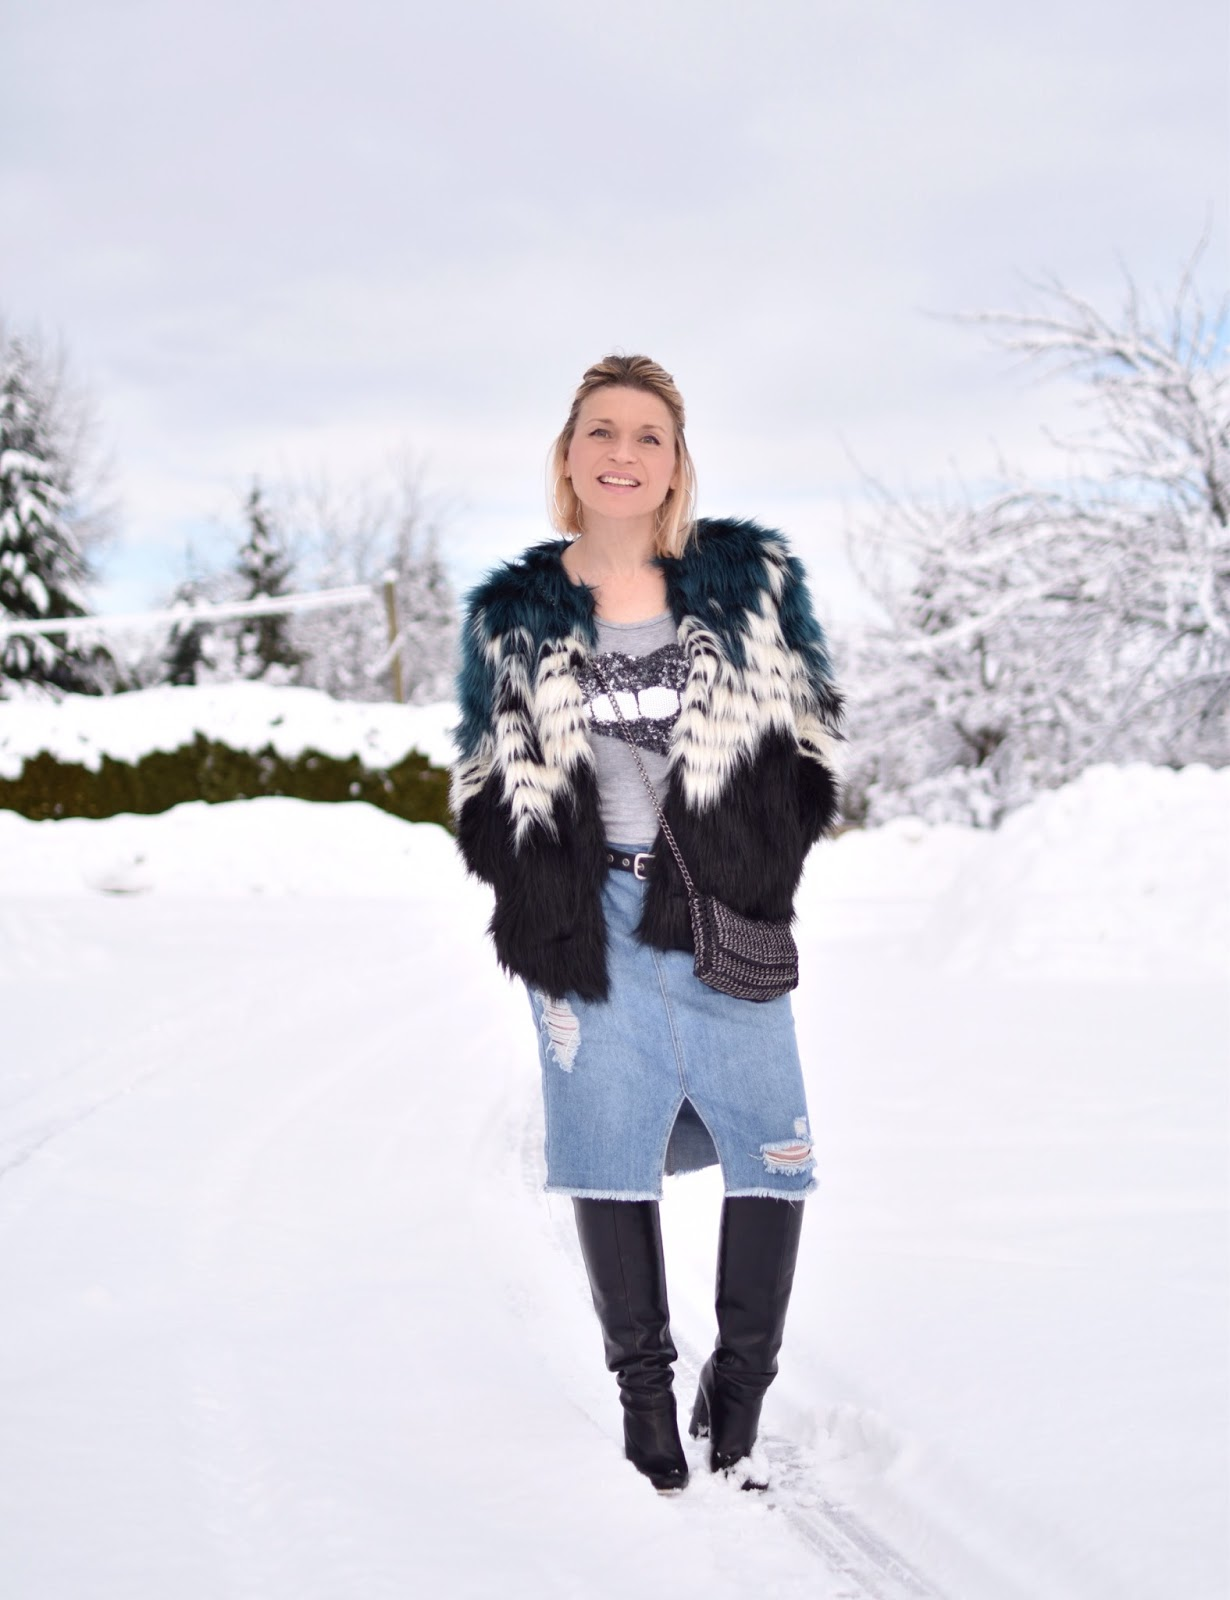 Monika Faulkner outfit inspiration - styling a distressed denim skirt with a sequinned tee, faux-fur jacket, and knee-high boots